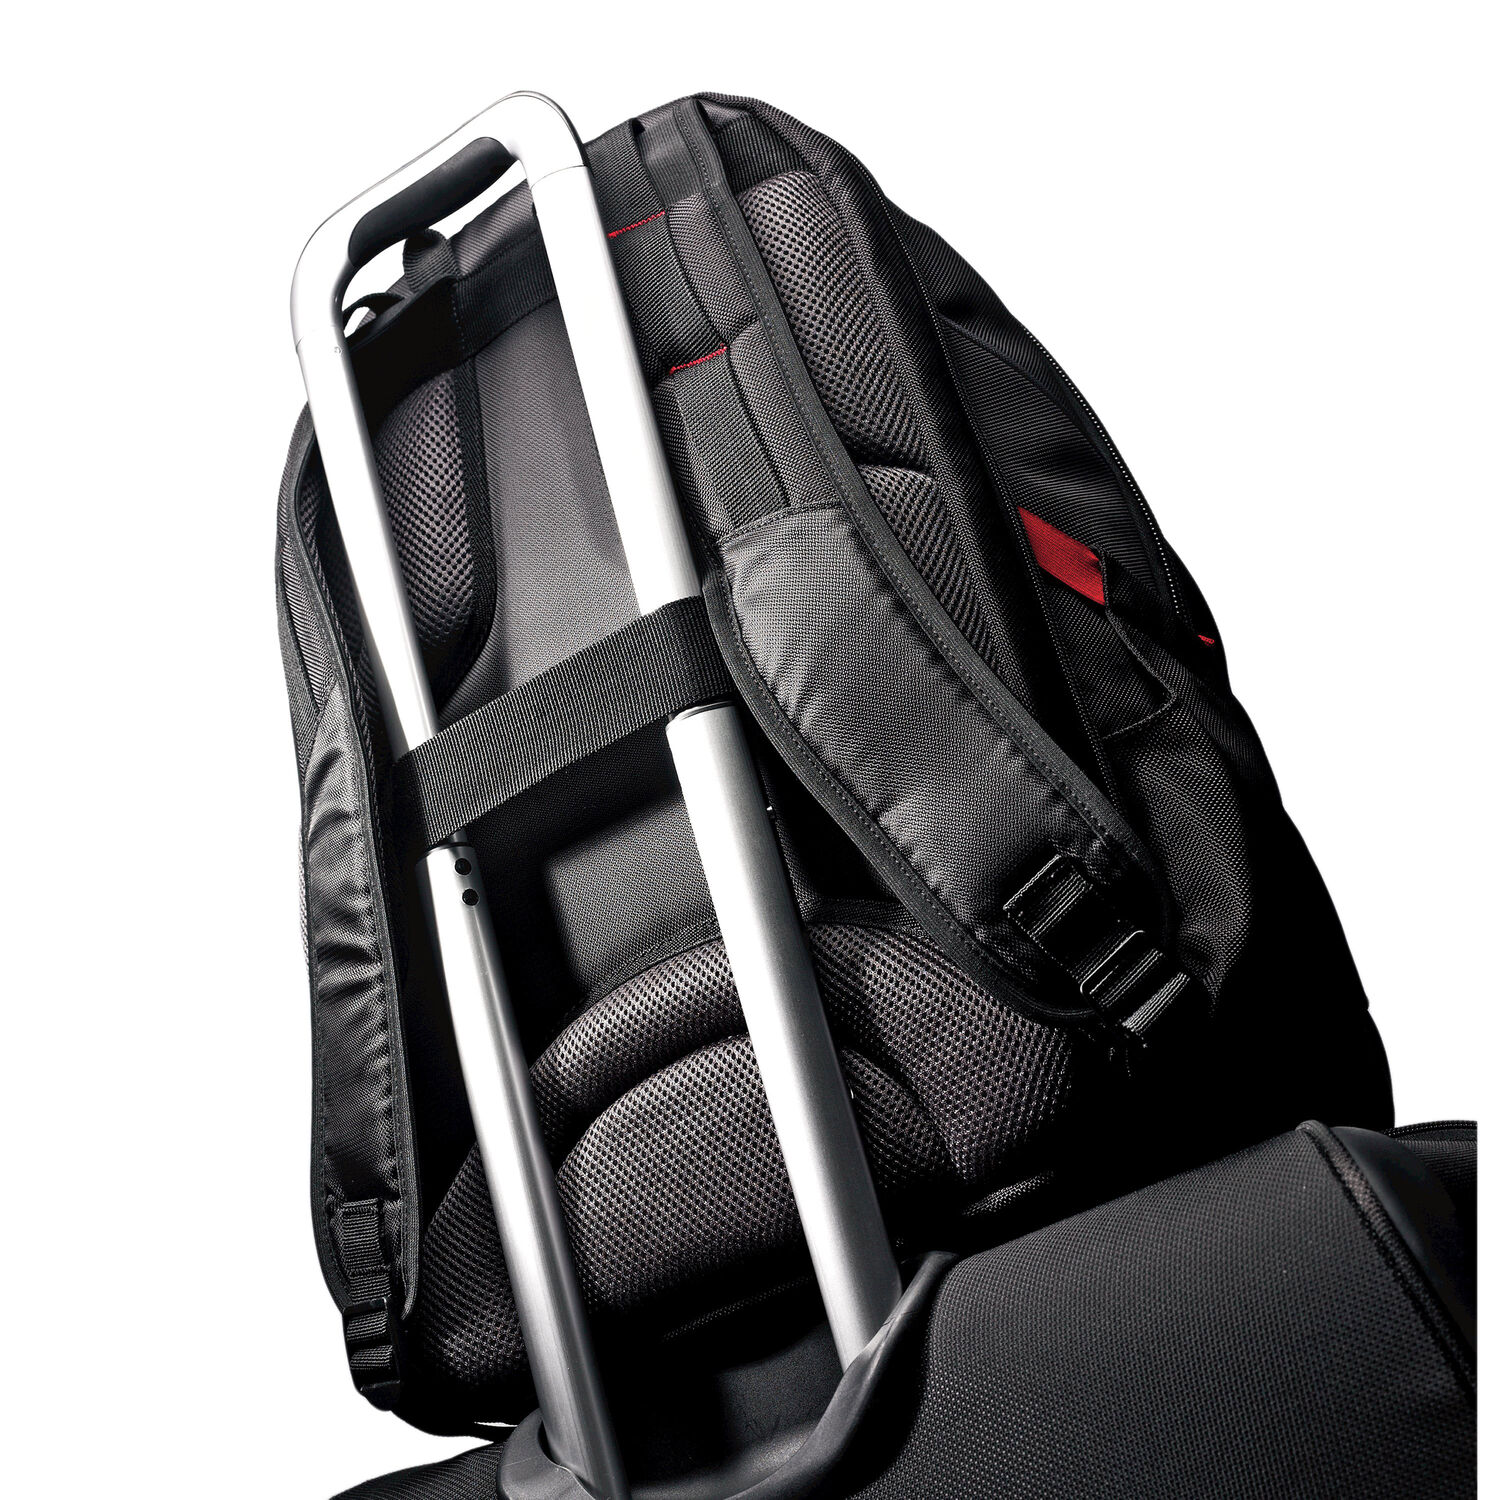 Samsonite Tectonic 17 quot  Perfect Fit Laptop Backpack in the color  Black Red. 4aa5321f980c1